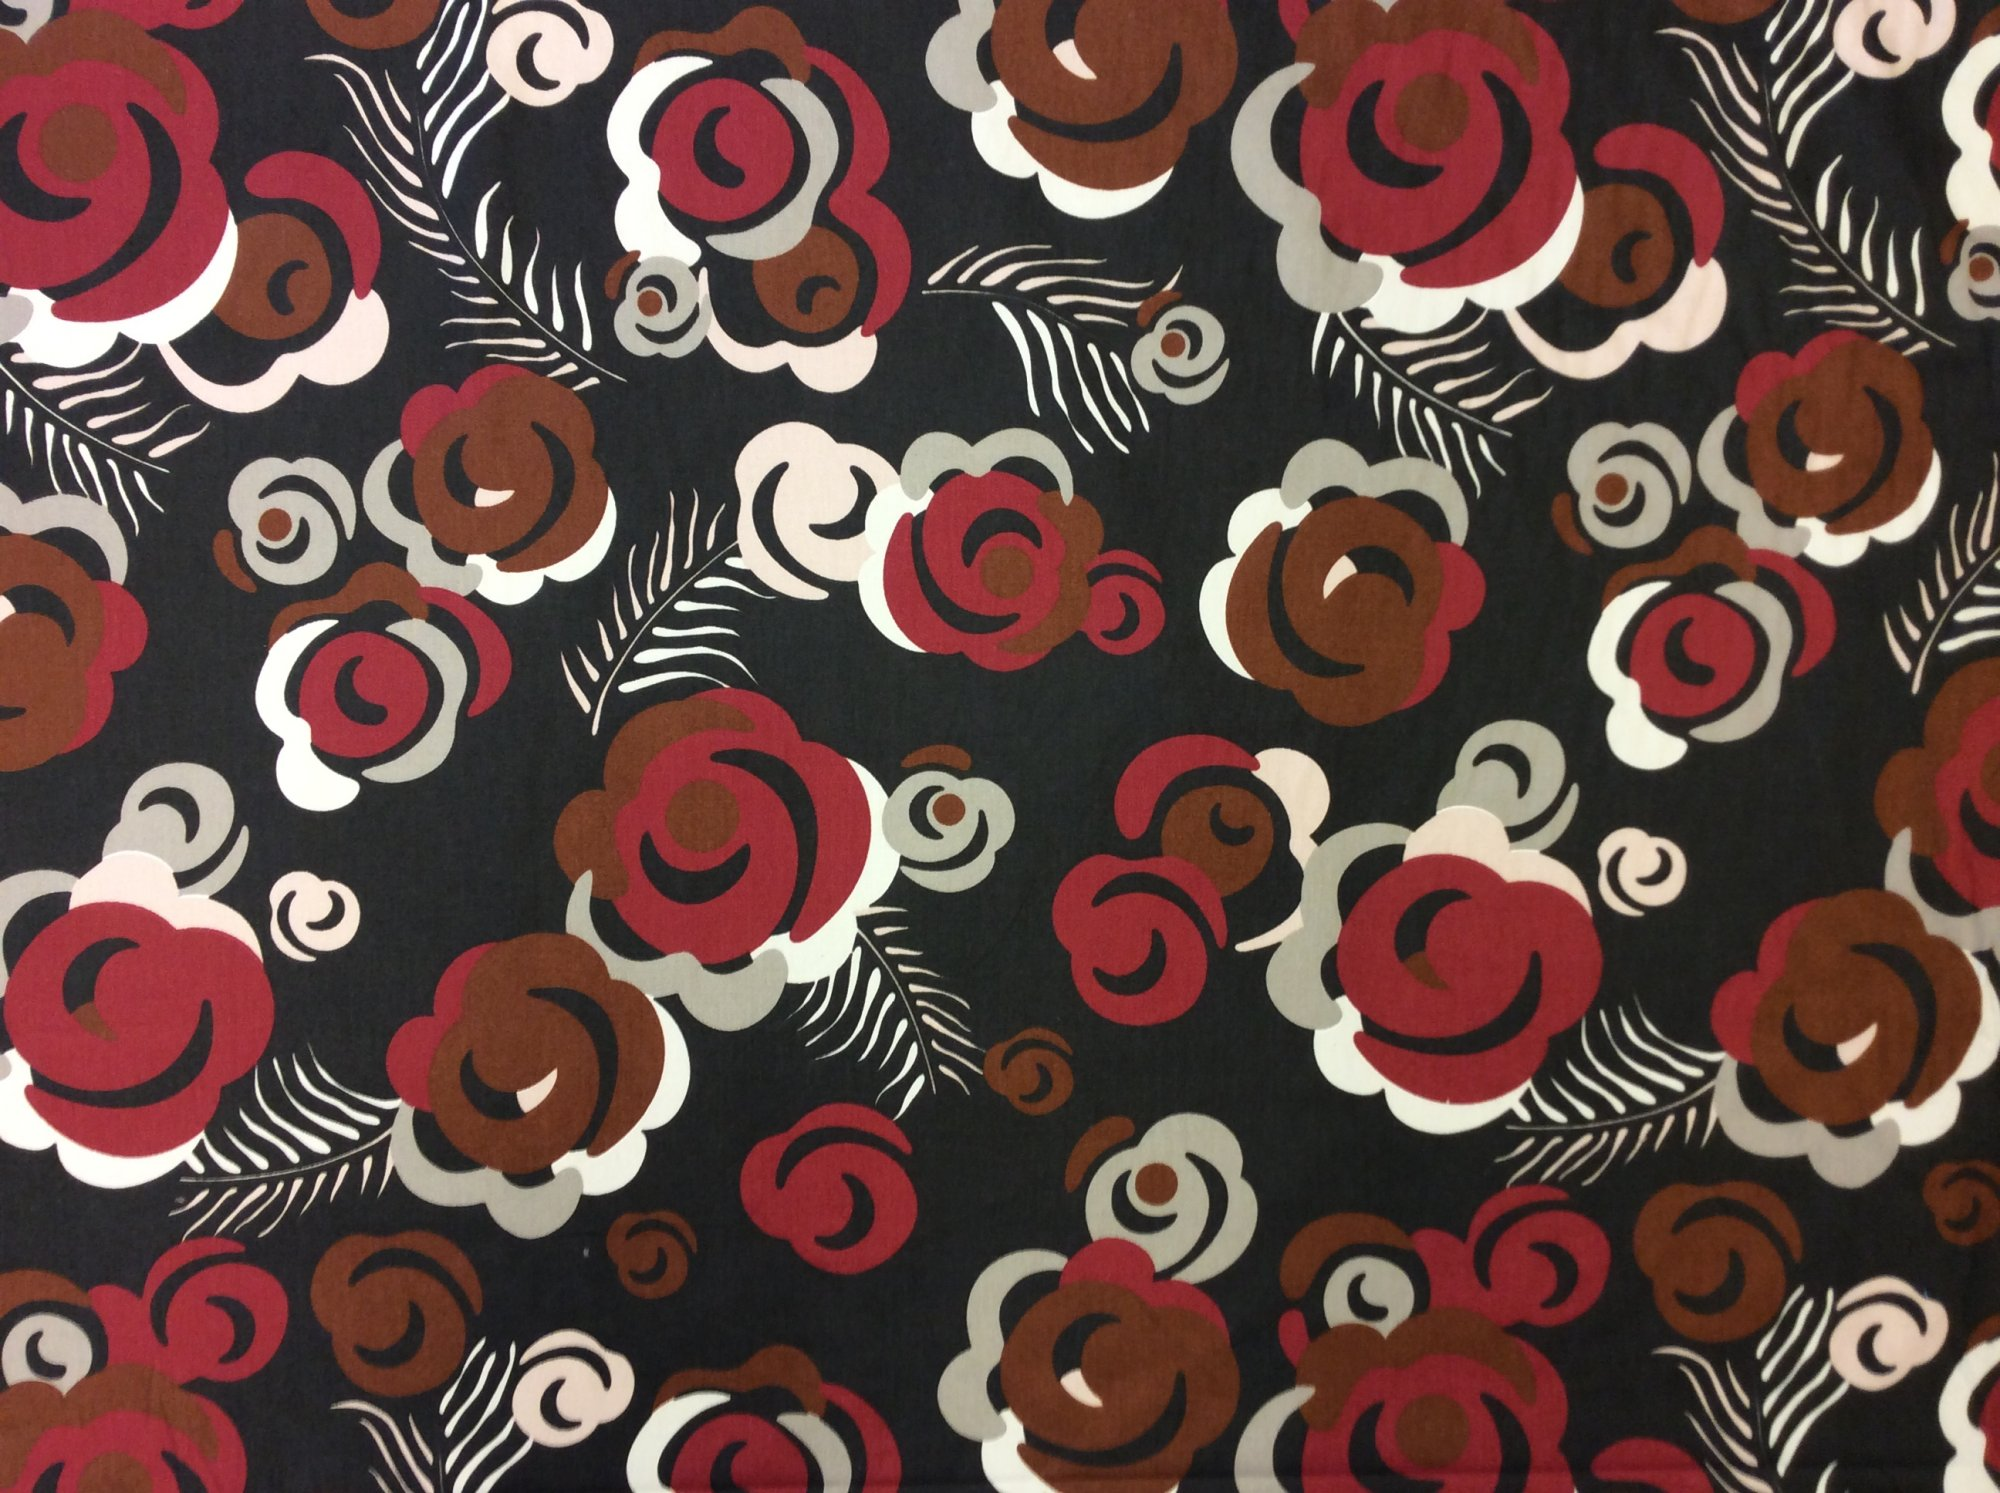 6 YARD BOLT! Dwell Studio Retro Modern Floral Feather Bold Red Grey Cotton Fabric Upholstery Fabric SALE!  LHD202